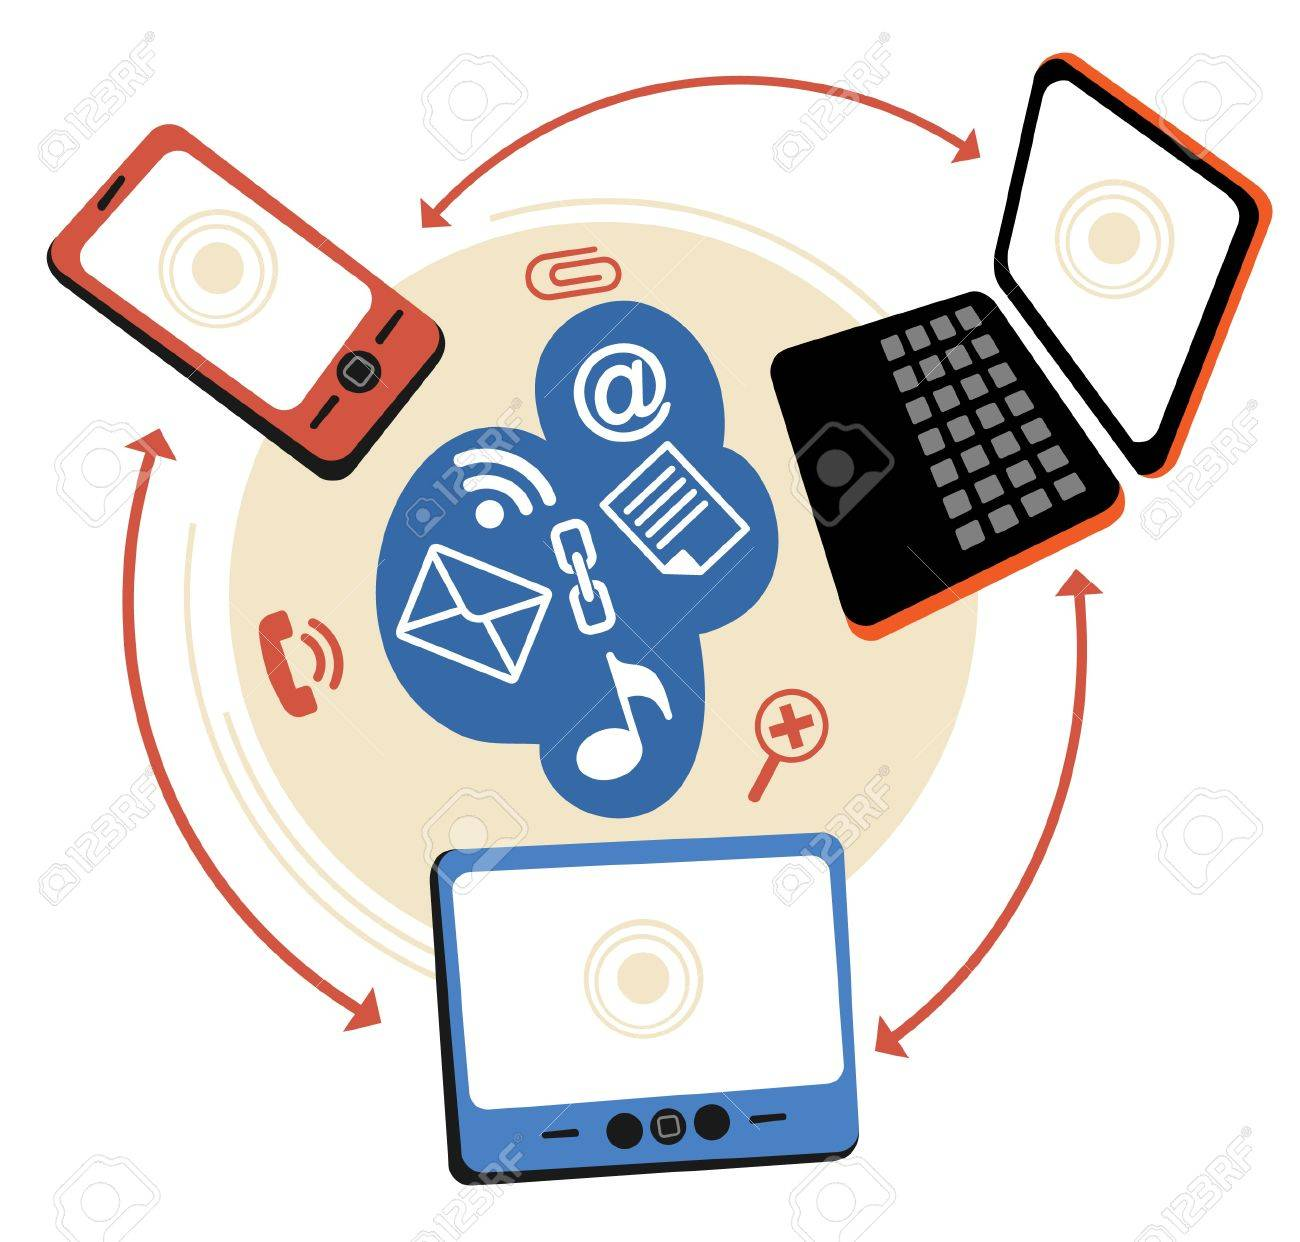 laptop phone tablet  Connection.communication in the global computer networks. Stock Vector - 12186048